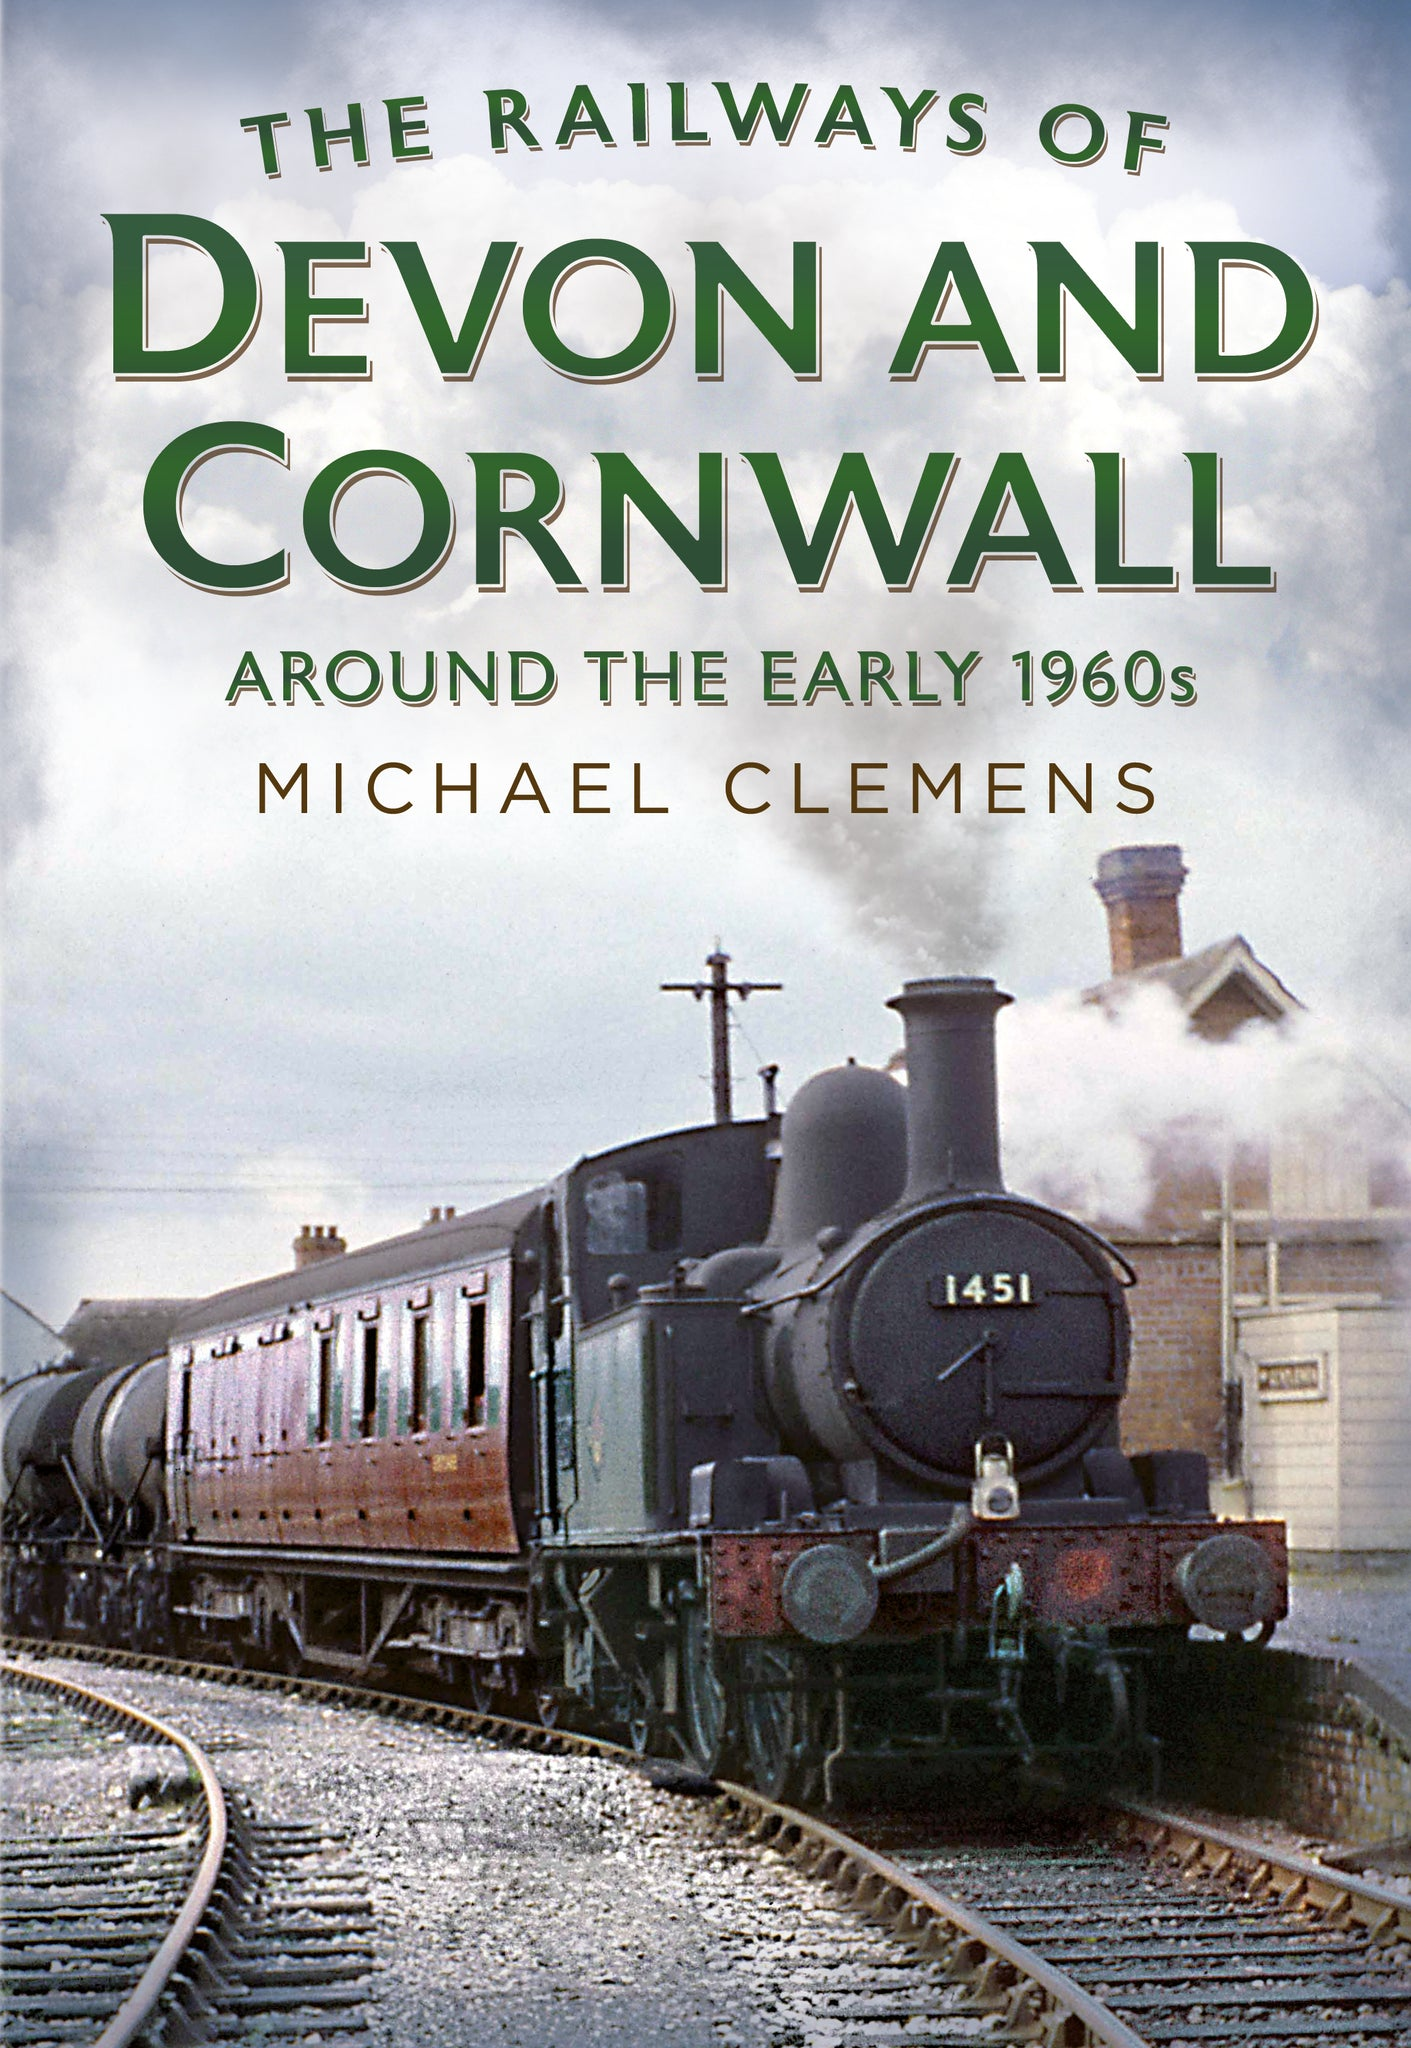 The Railways of Devon and Cornwall Around the Early 1960s (hardback edition)